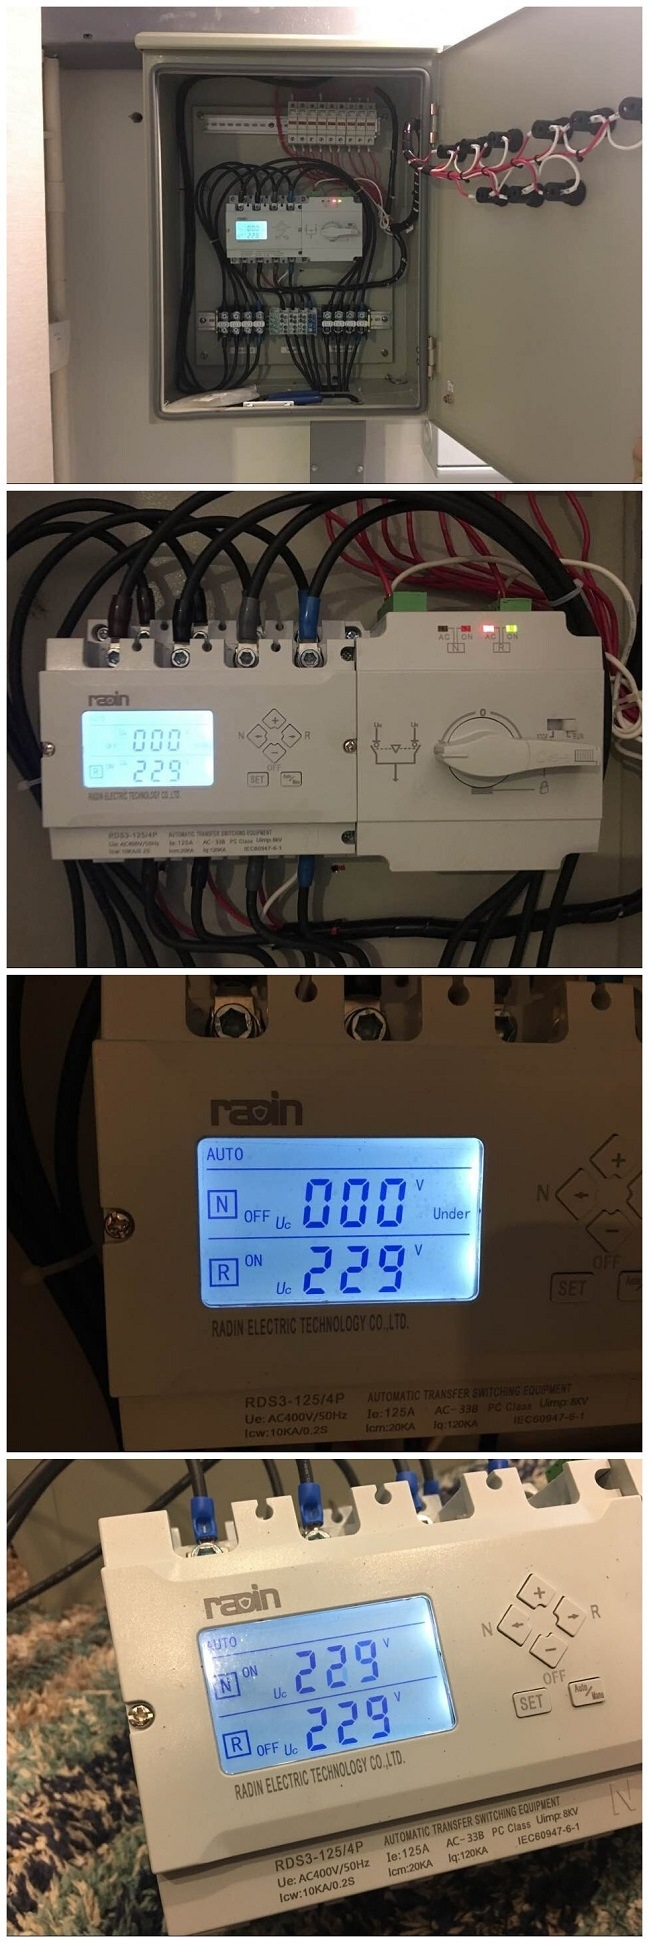 Generator Automatic Changeover Switch Wiring Diagram China Description Of Transfer For Dummies Radin Electric Provides Ats Design Engineering And Full After Sales Support A Wide Range Applications